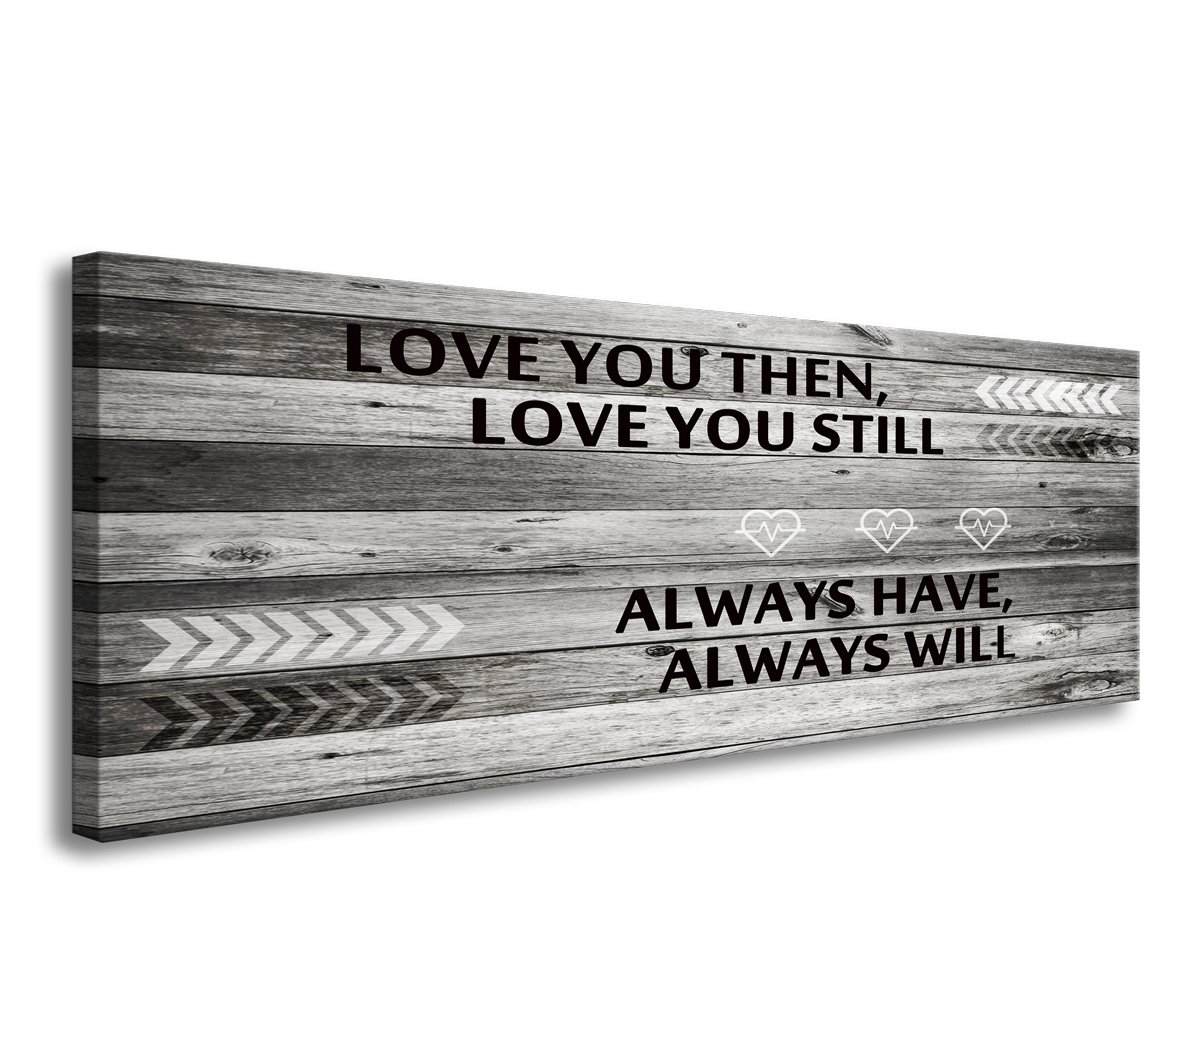 A71841 Canvas Wall Art Love You Still Large Wall Art Ready To Hang For Master Bedroom Wall Decor